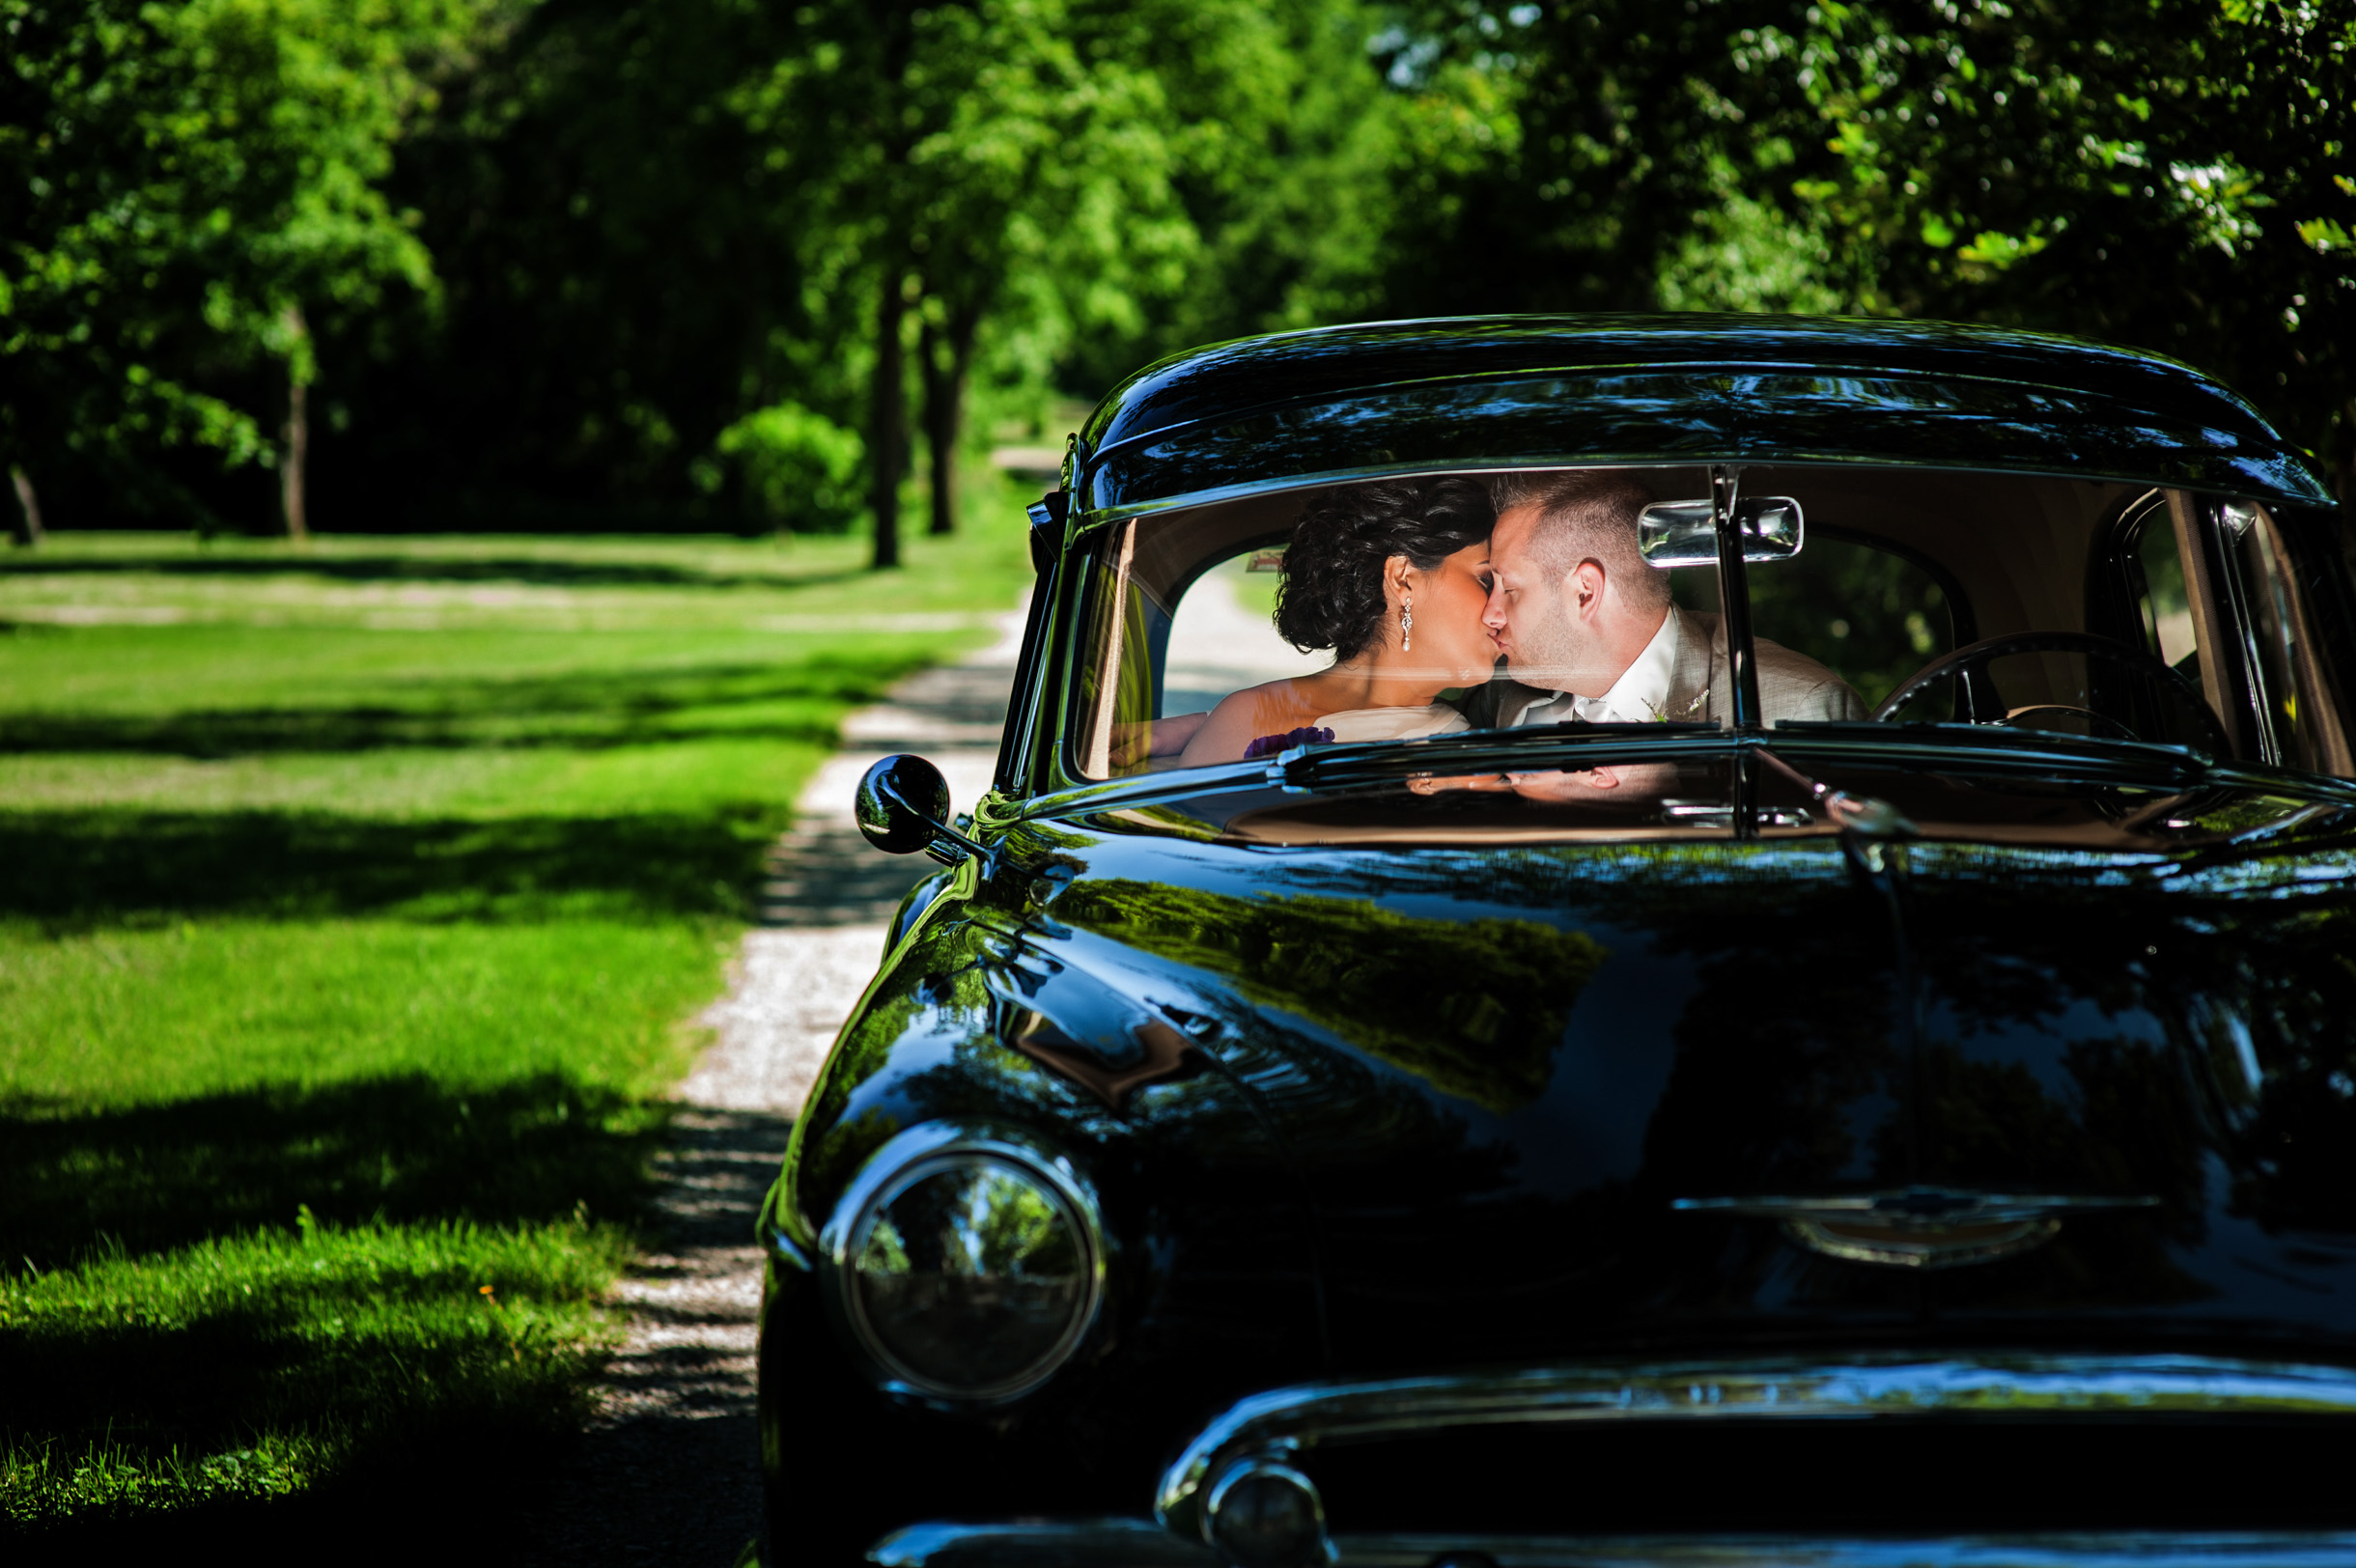 Bride and Groom kissing inside a classic car on a country road